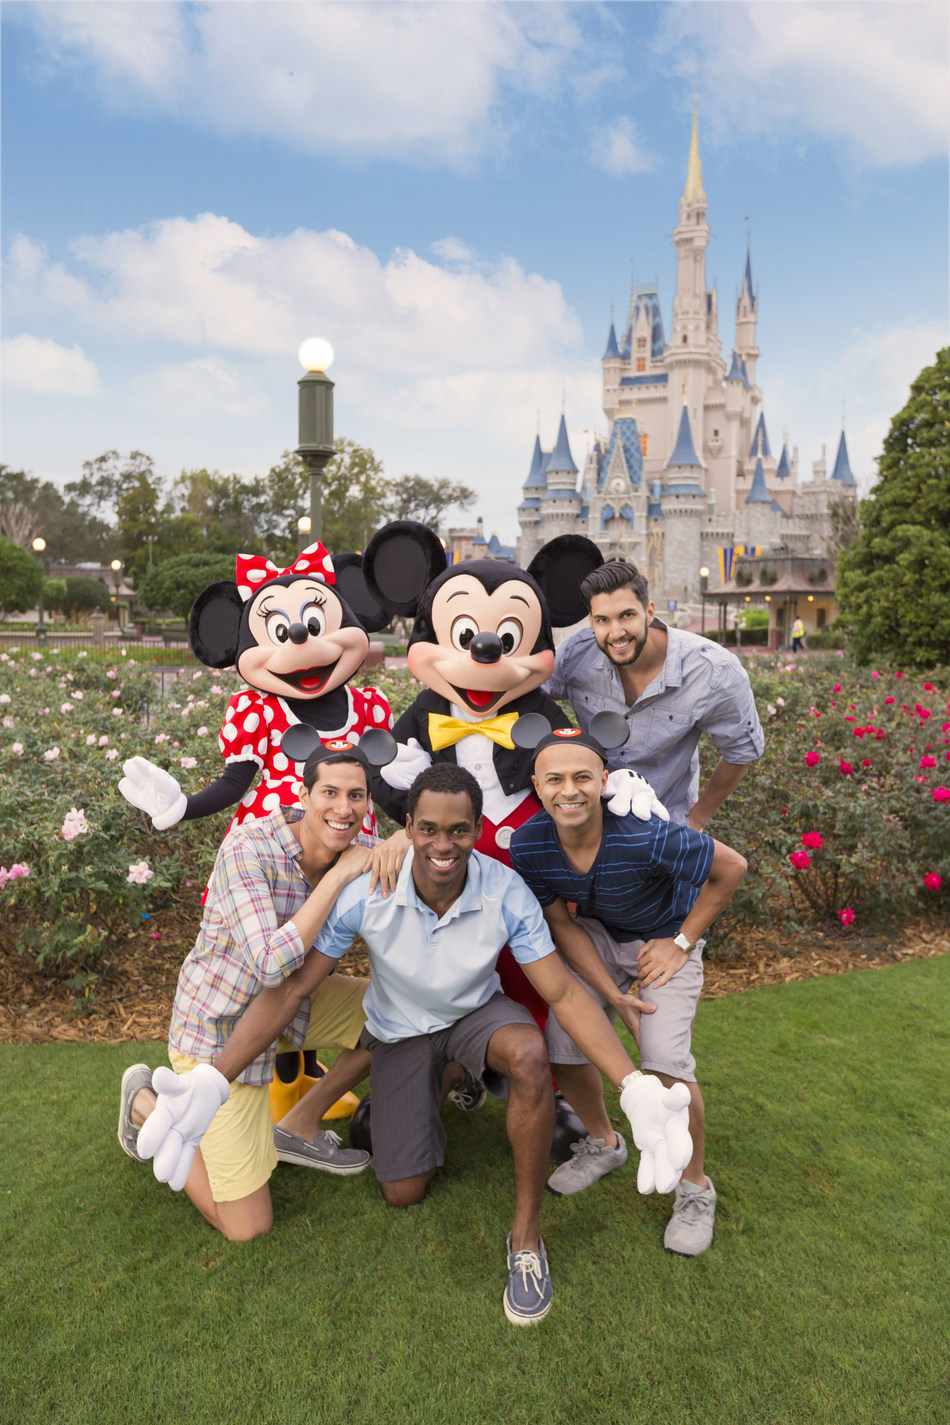 Orlando's lineup of LGBTQ events this summer includes everything from pride parties and live entertainment to activities at Walt Disney World® Resort. Photo courtesy of Walt Disney World.